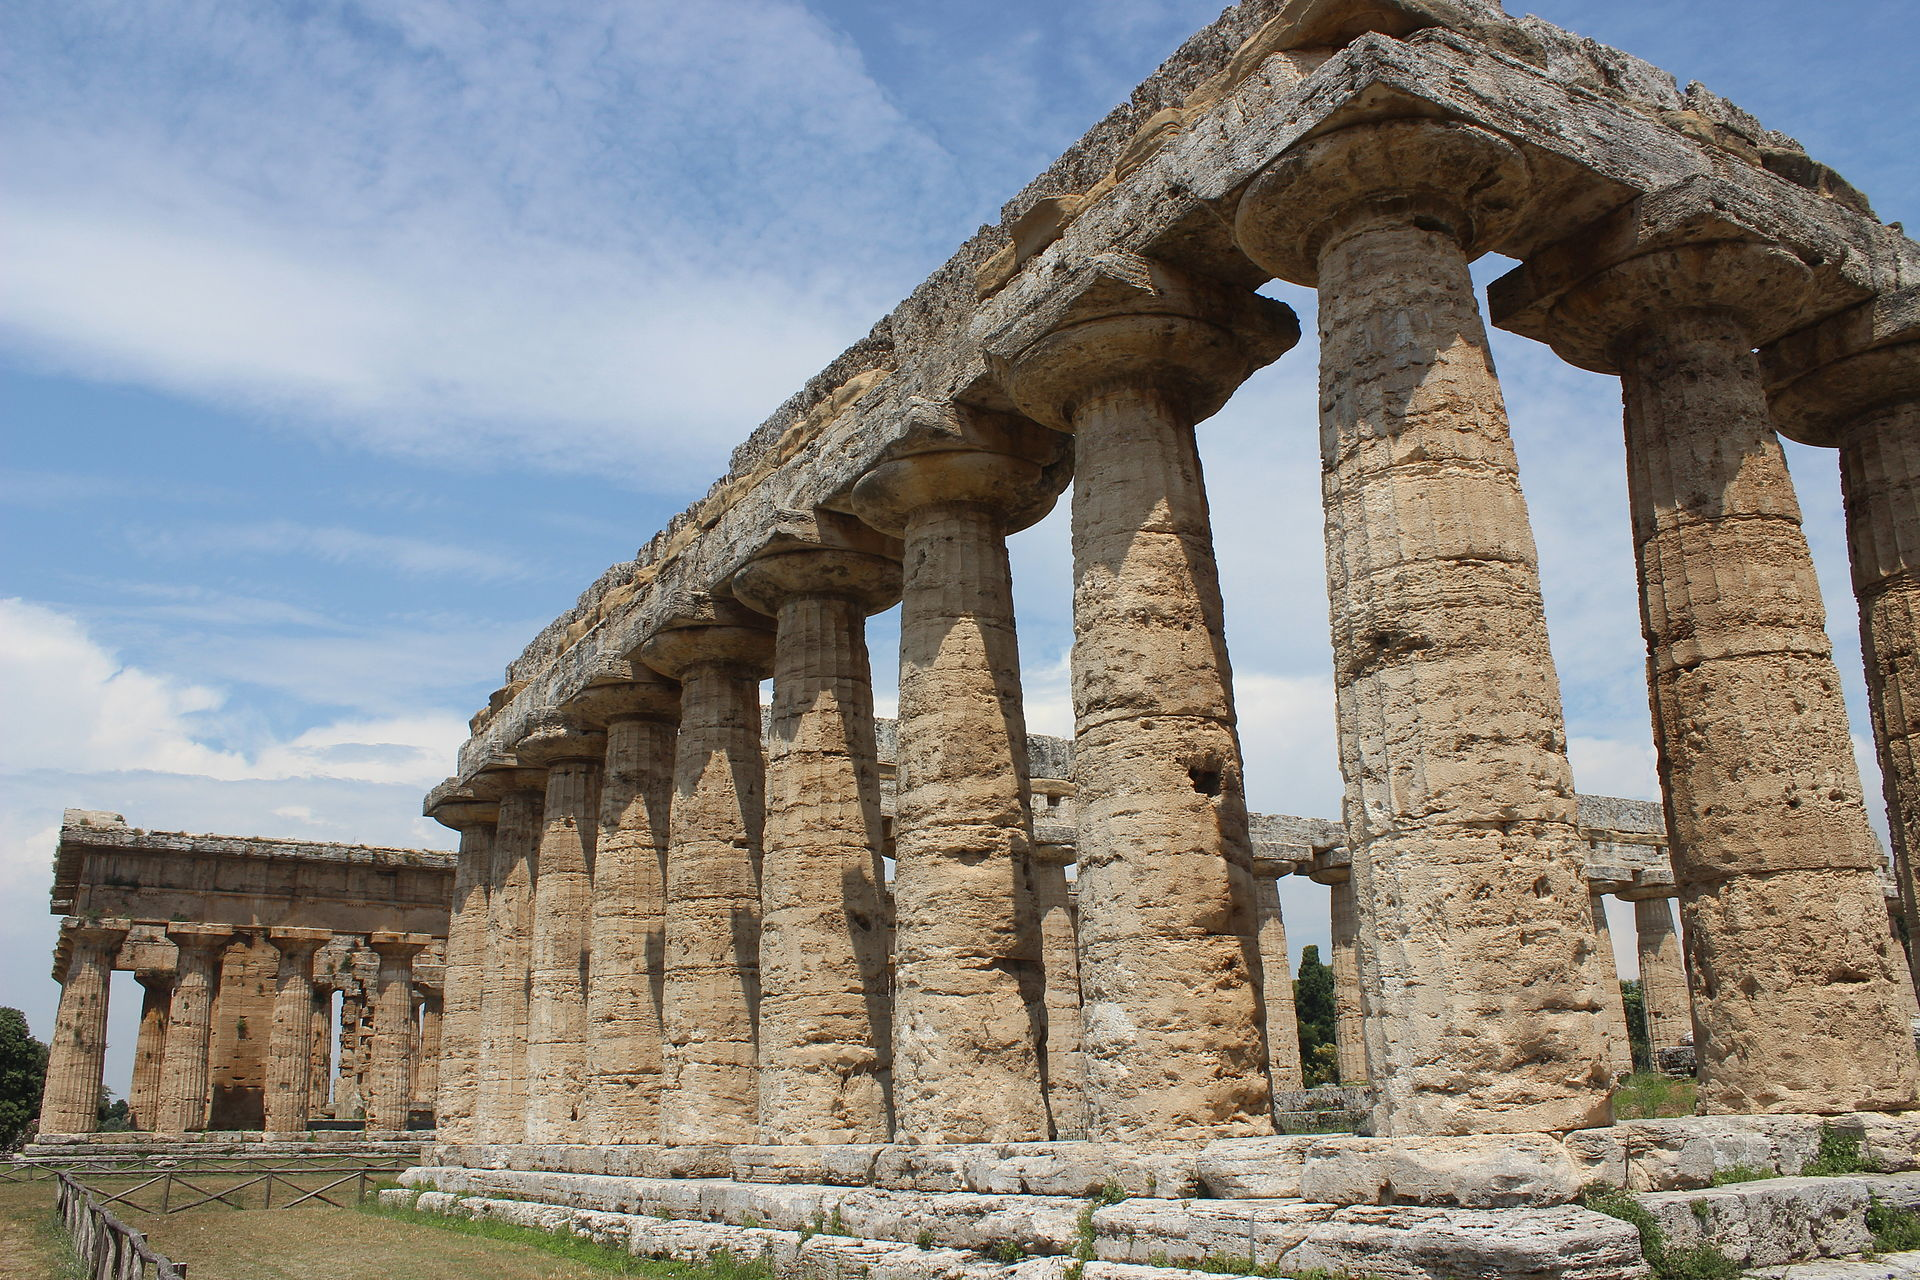 greek doric order ancient paestum architecture temples capitals columns early roman wikipedia archaic wiki italy greece templos later wider much